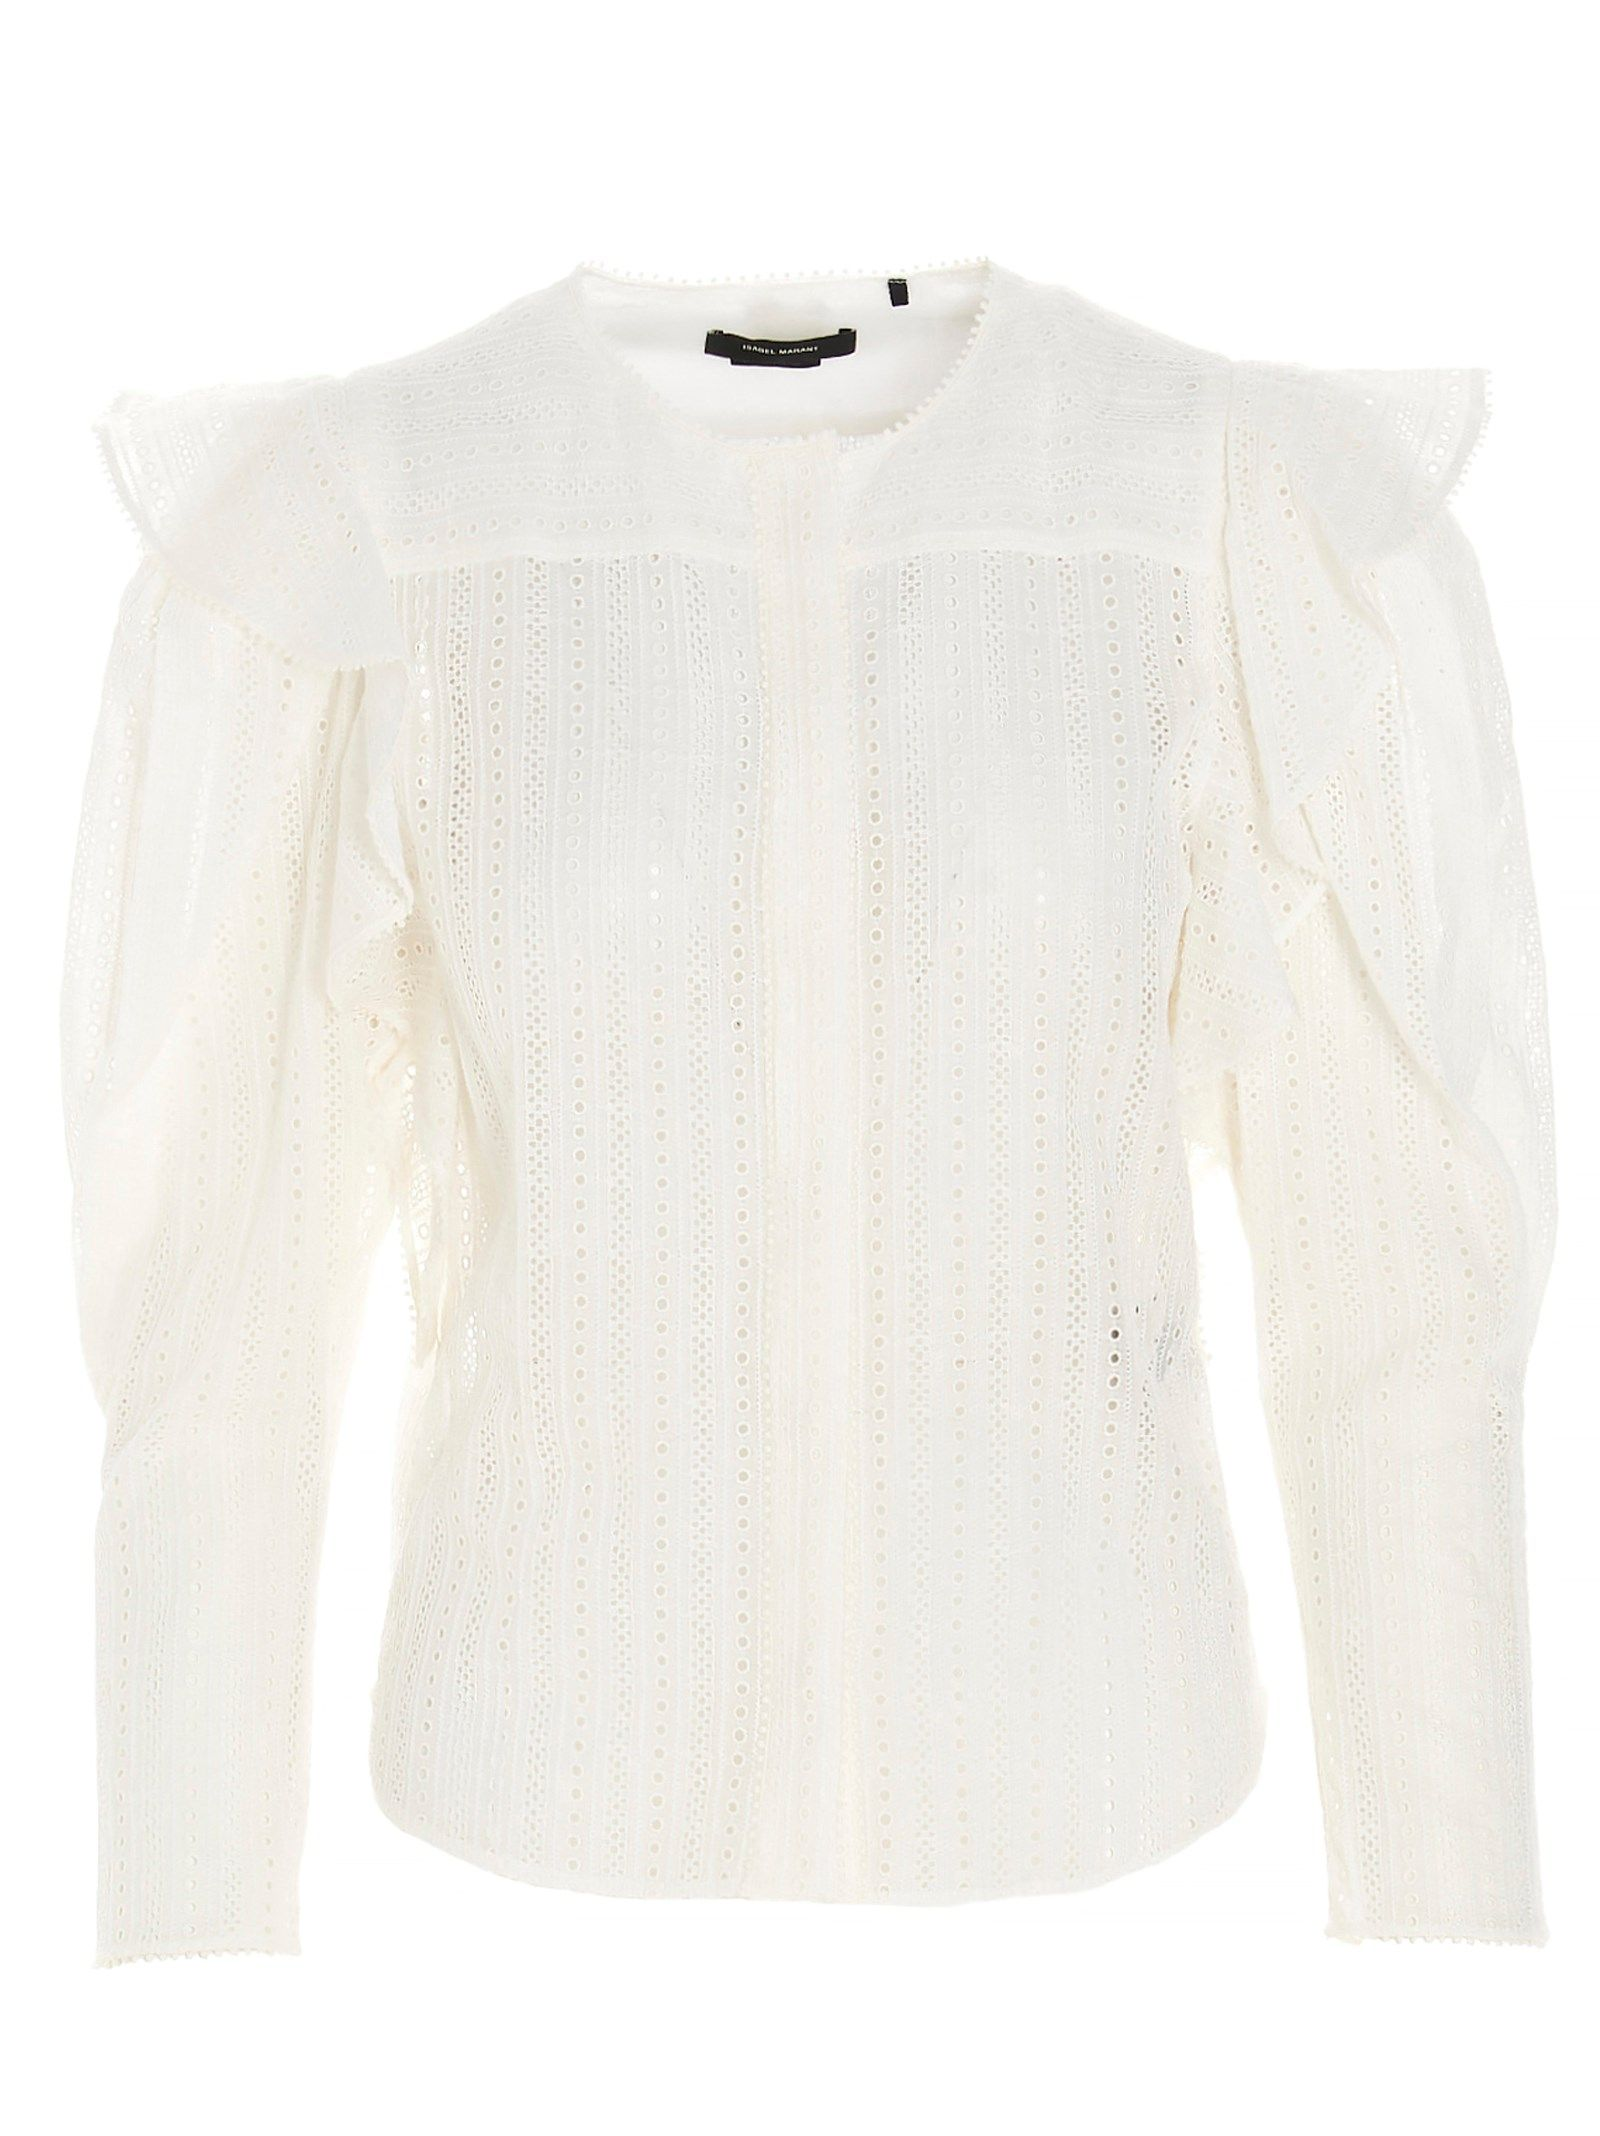 Isabel Marant ISABEL MARANT WOMEN'S WHITE OTHER MATERIALS SHIRT